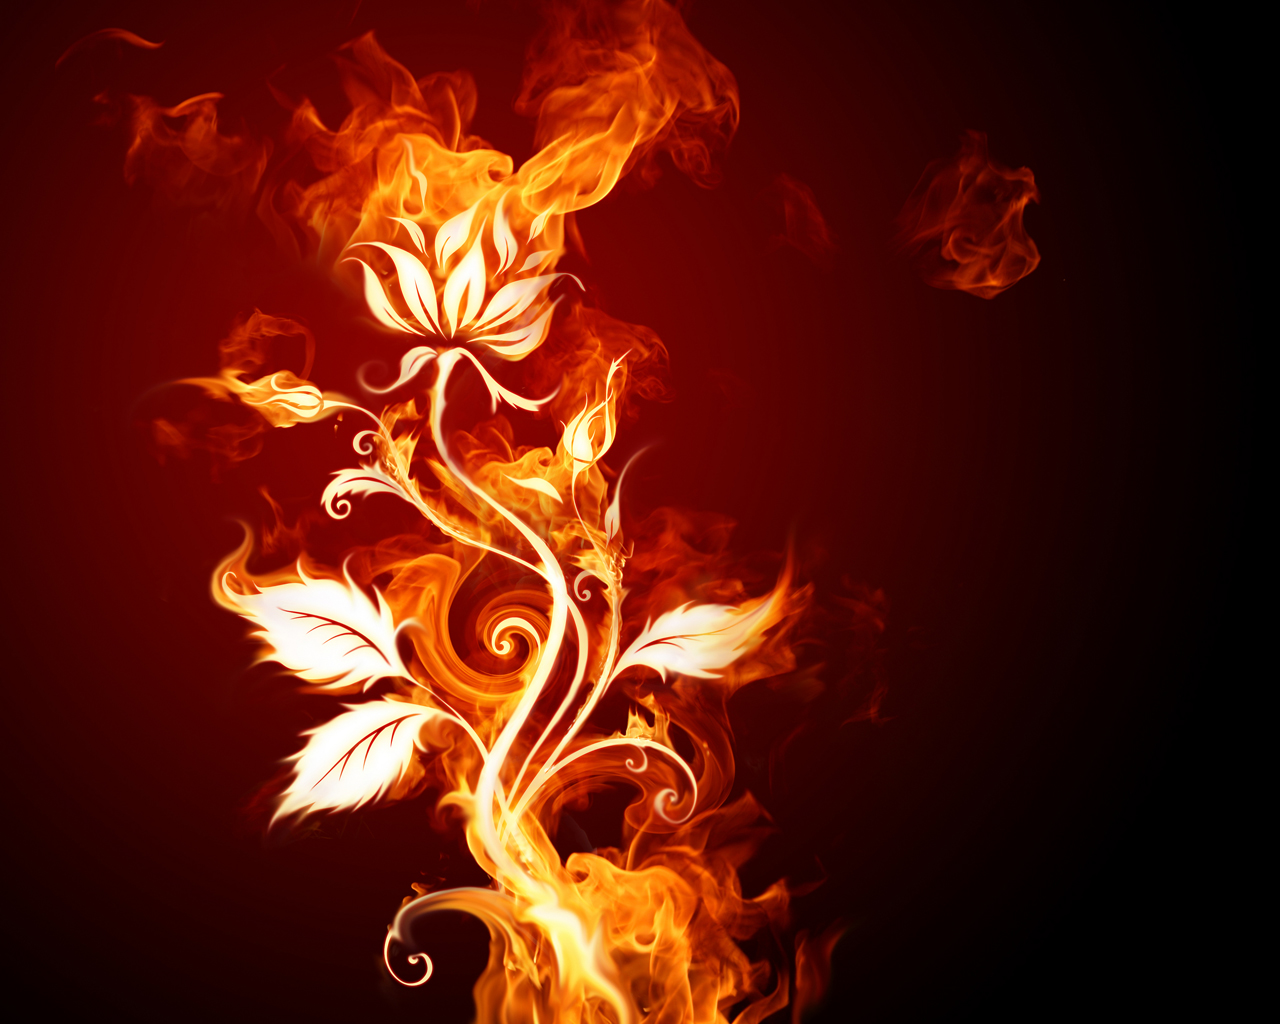 Silhouette of the flower of fire